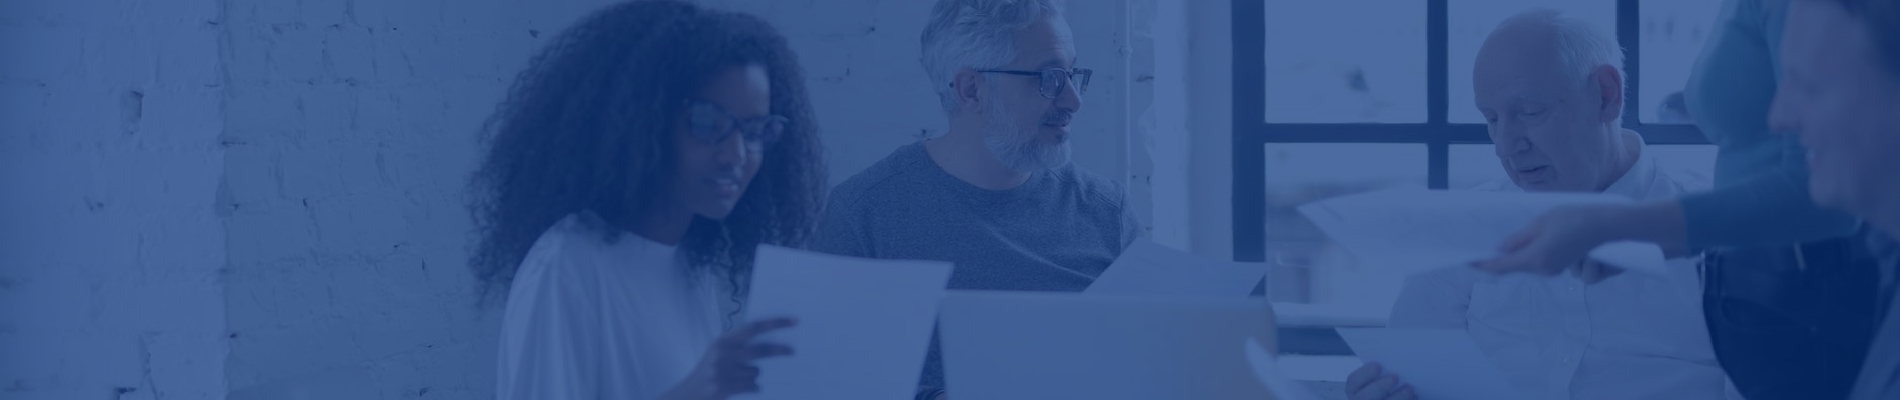 Why should you consider automated testing for Microsoft Dynamics 365 updates?